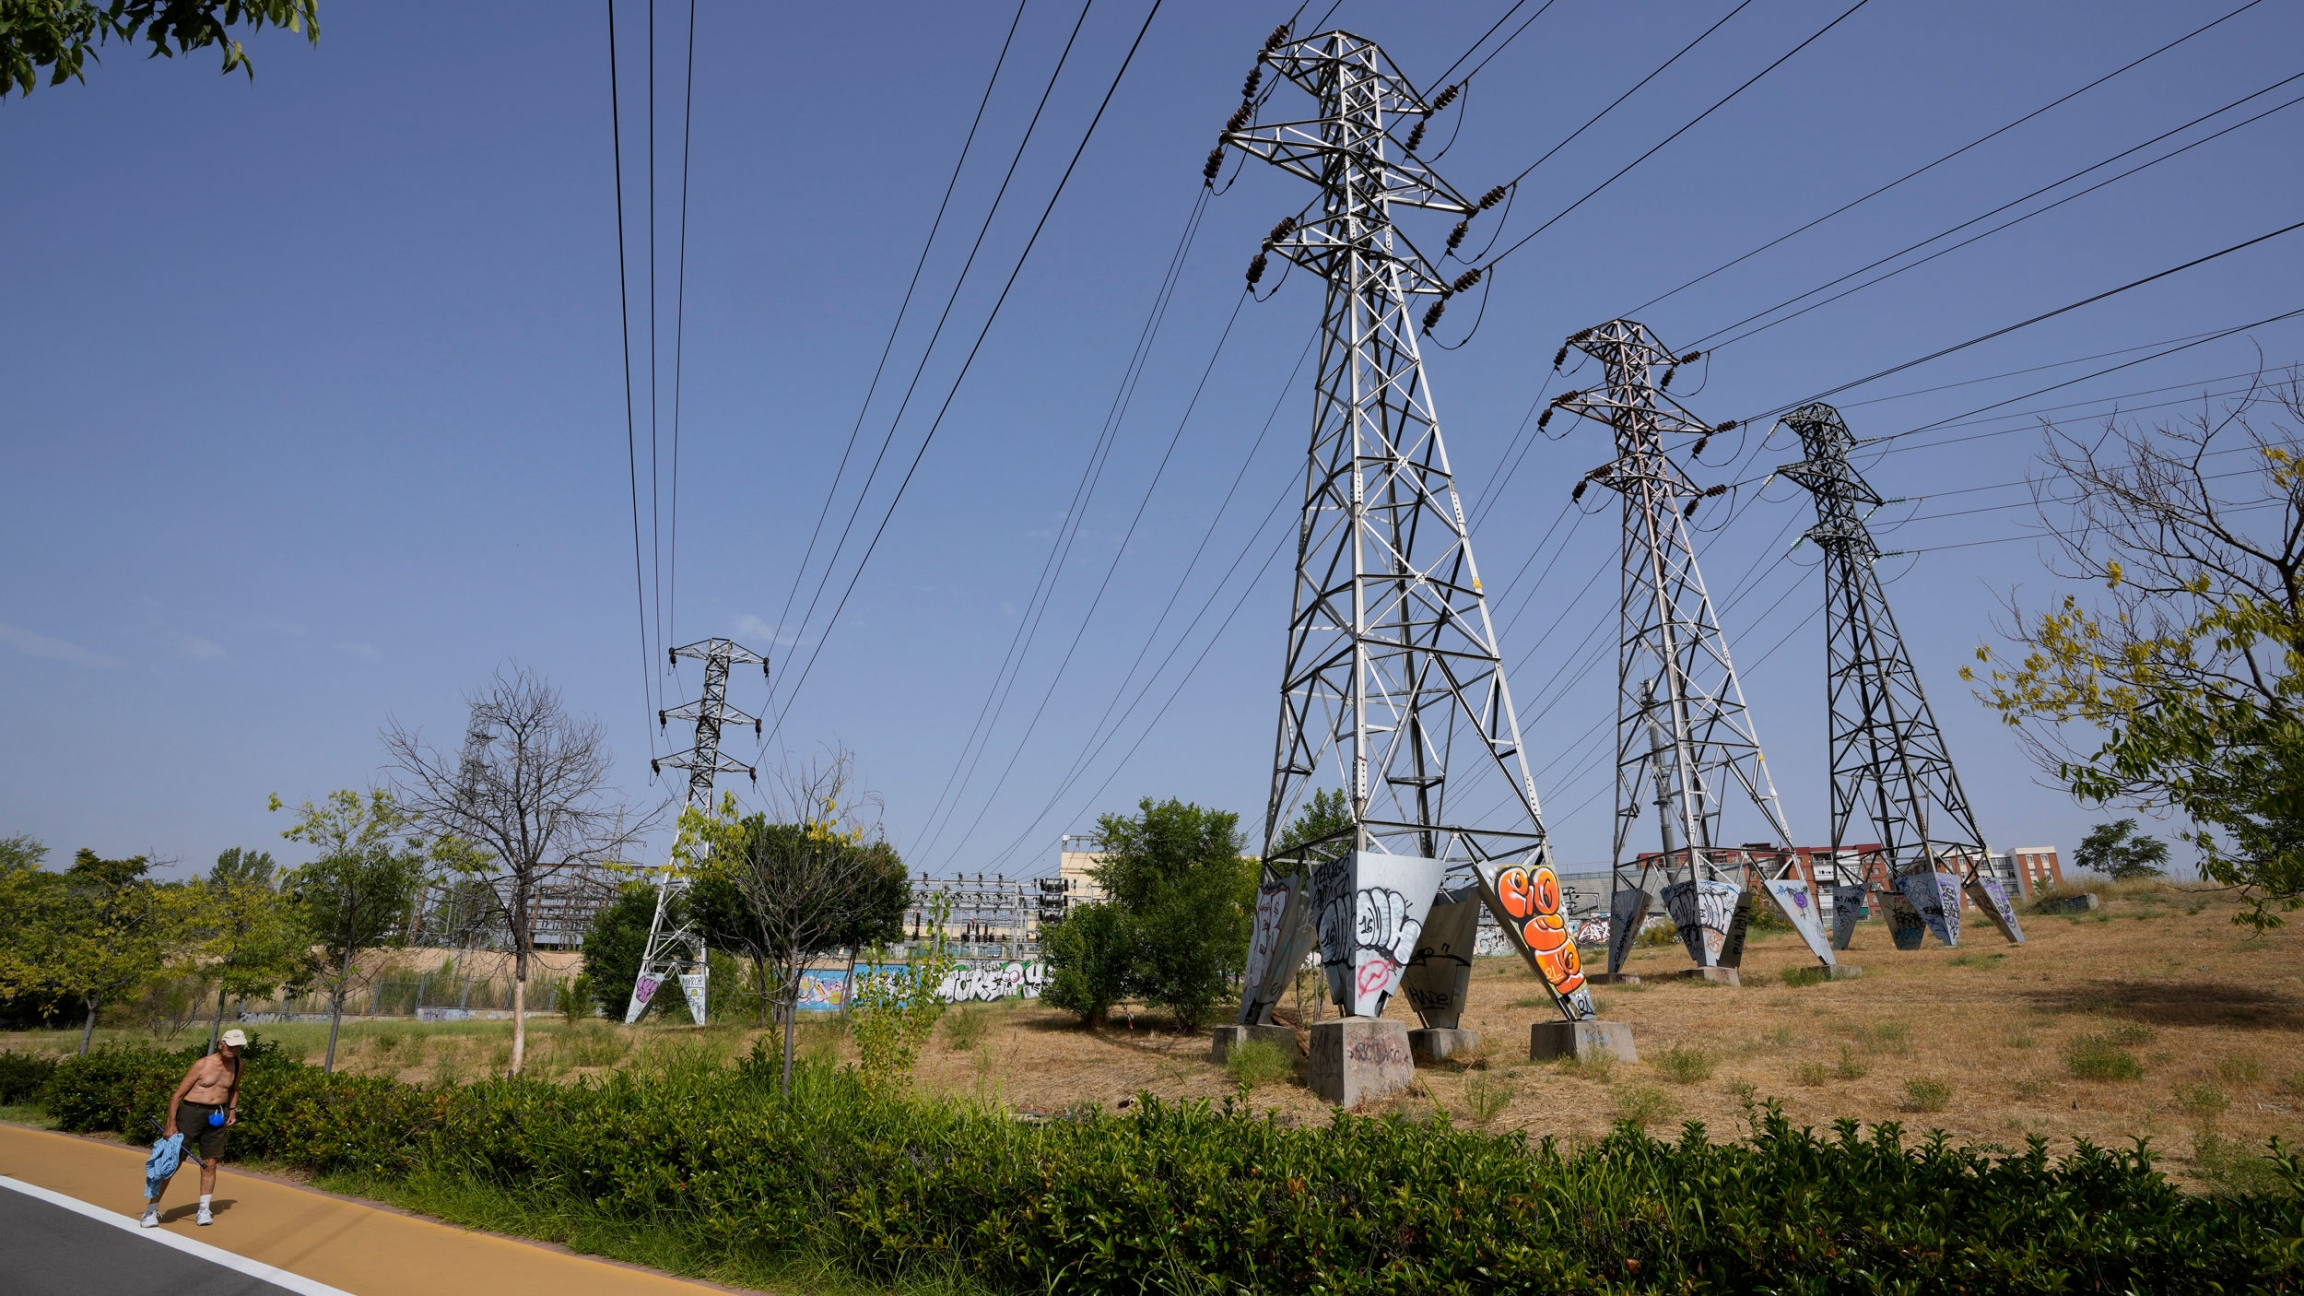 A man walks past electricity pylons at an electricity sub station in Madrid, Spain, Wednesday, Aug. 11, 2021.